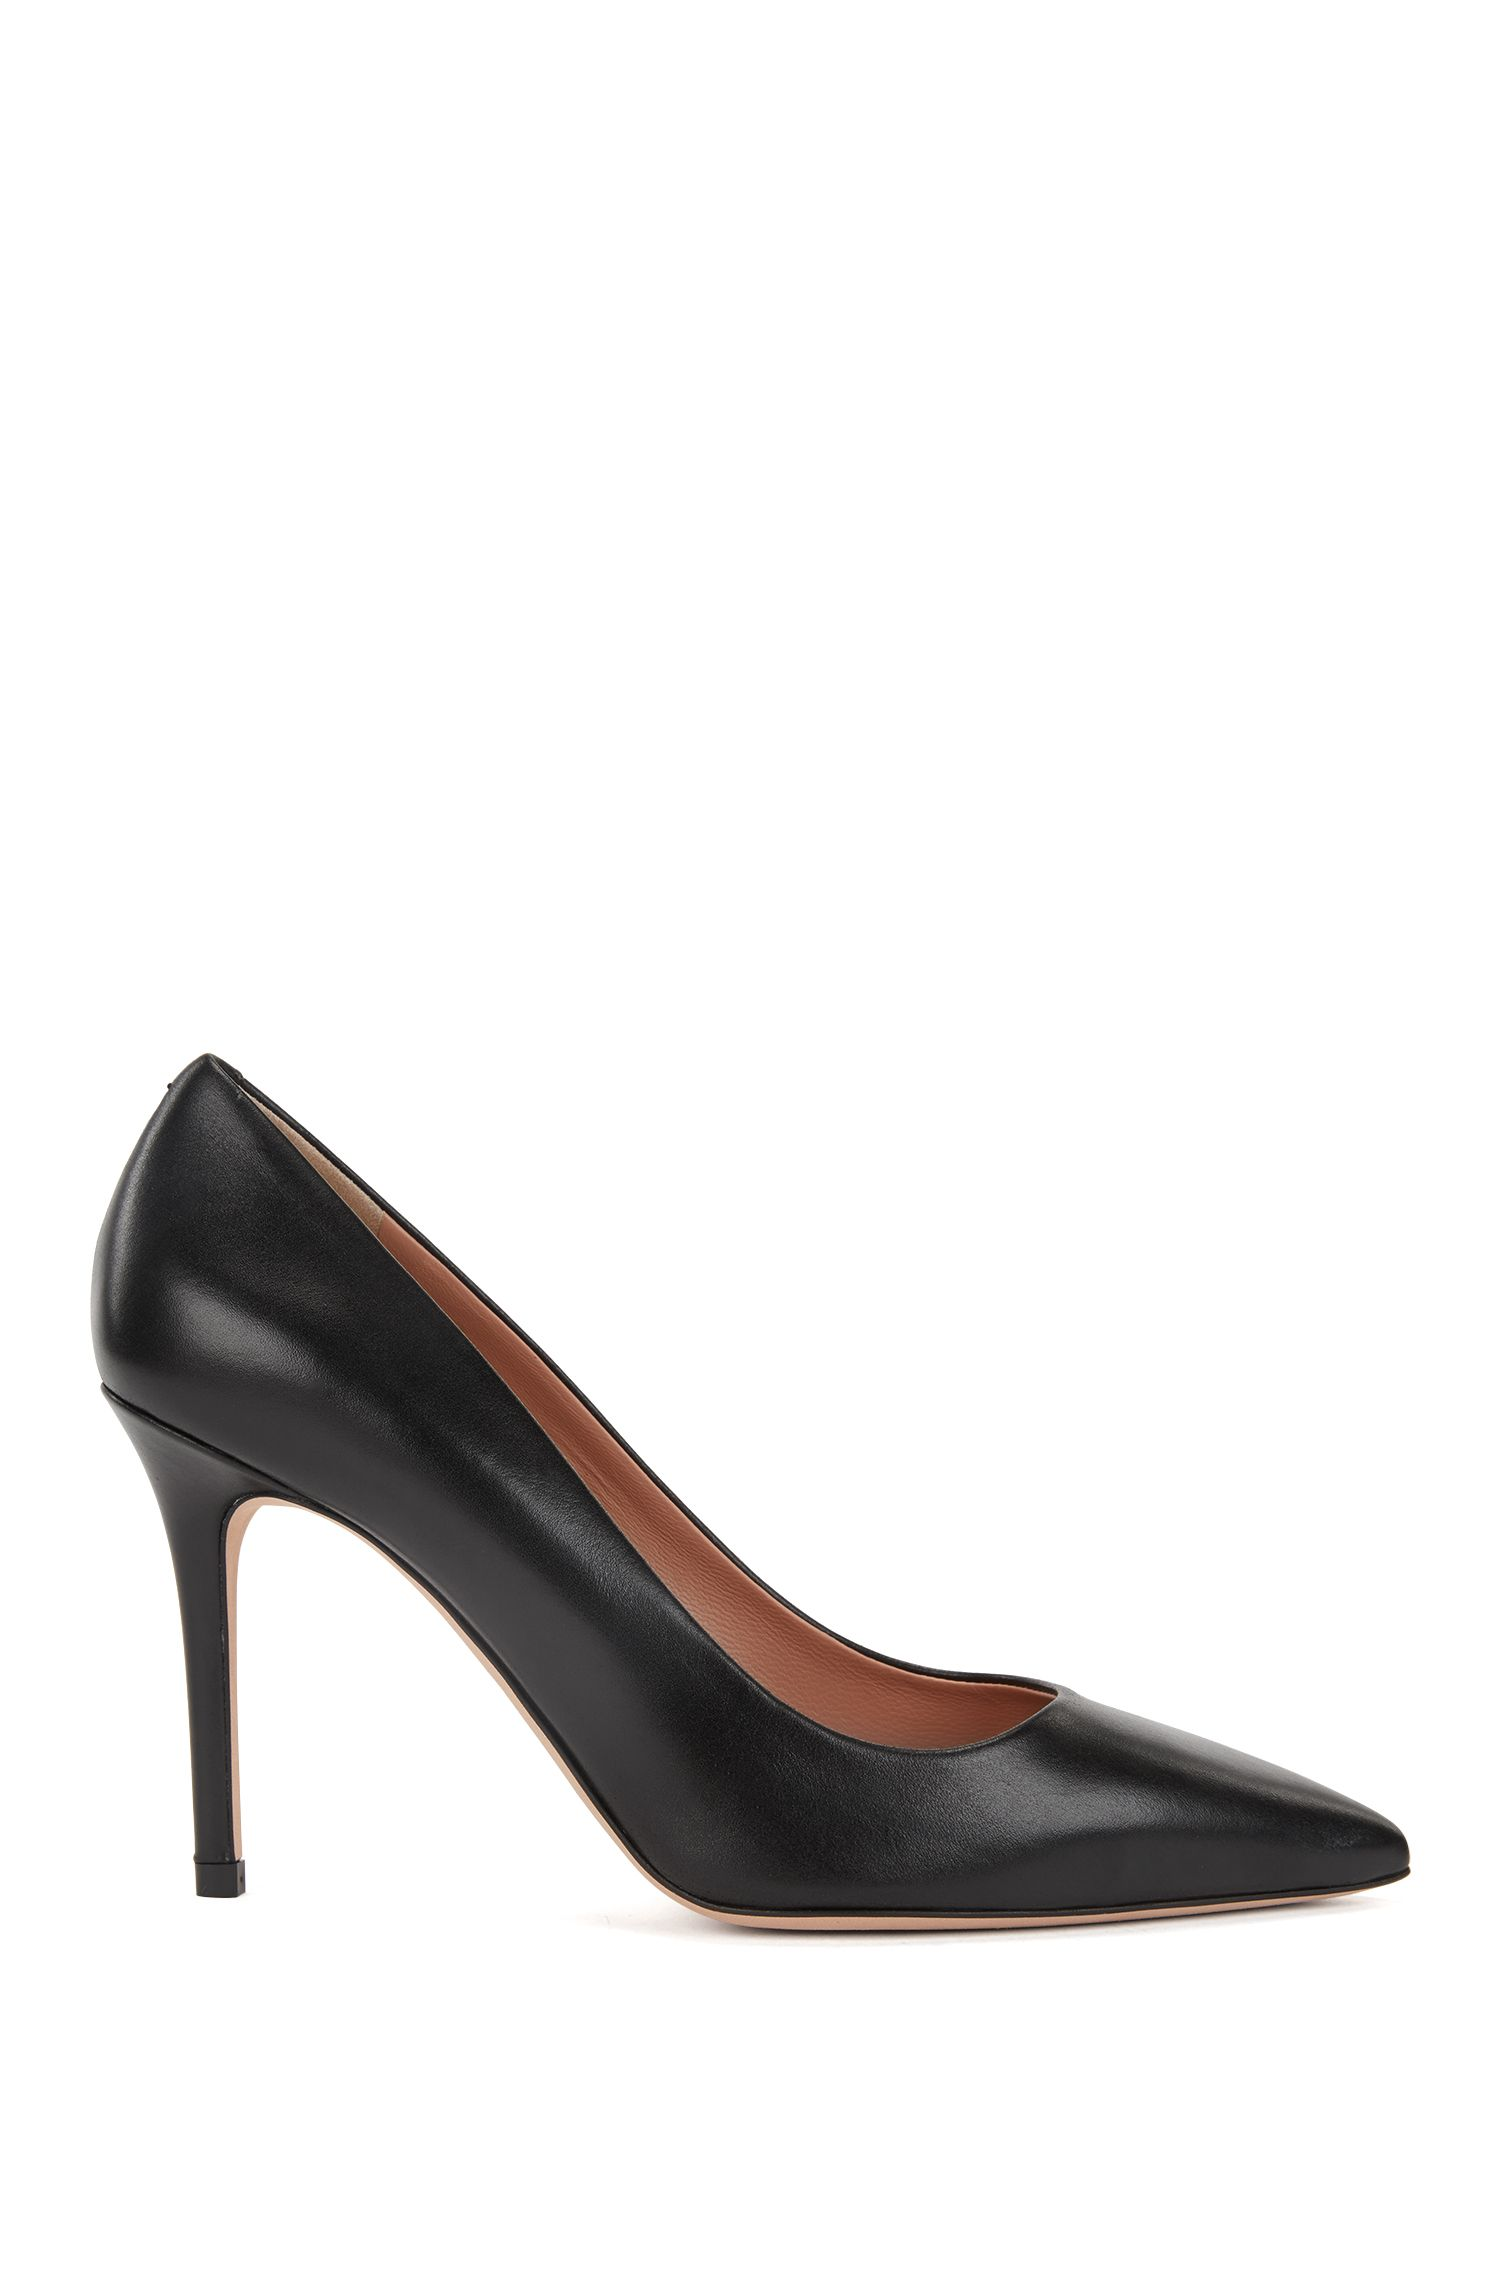 Pointed-toe court shoes in Italian leather, Black